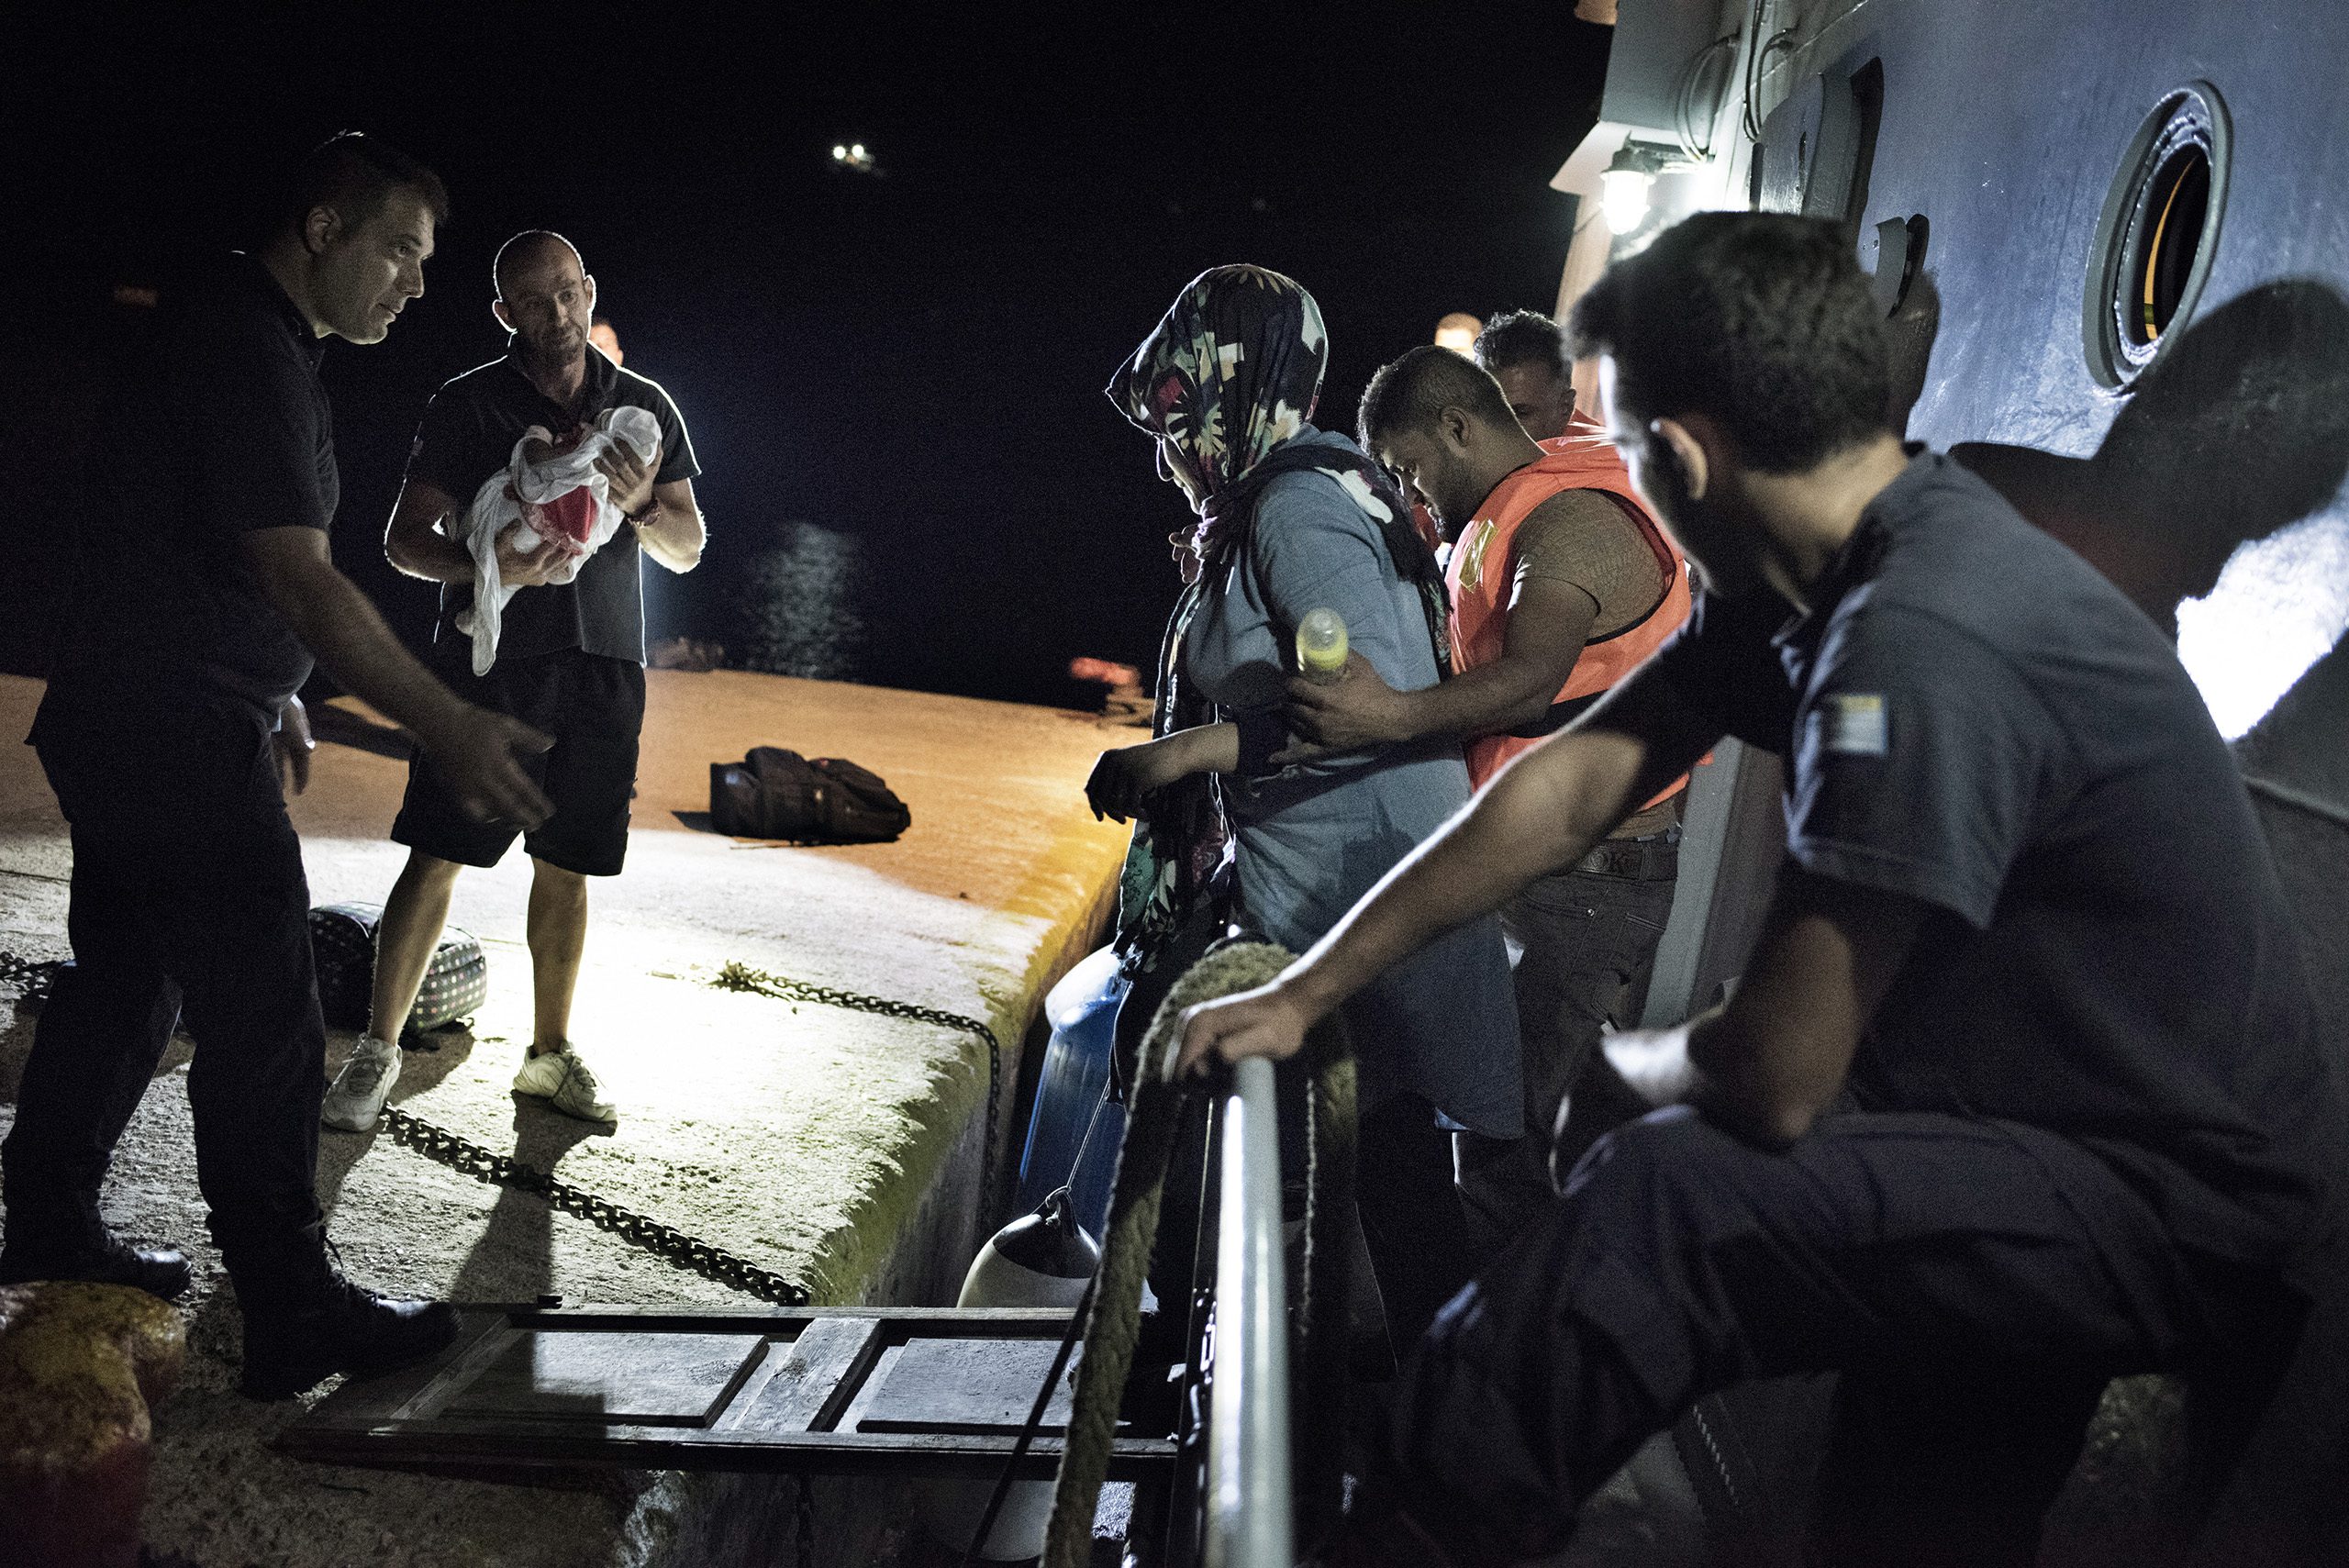 Greek coast guards bring a group of Syrian migrants onto the island of Farmakonisi, a Greek naval outpost near the border with Turkey. Sept. 7, 2015.